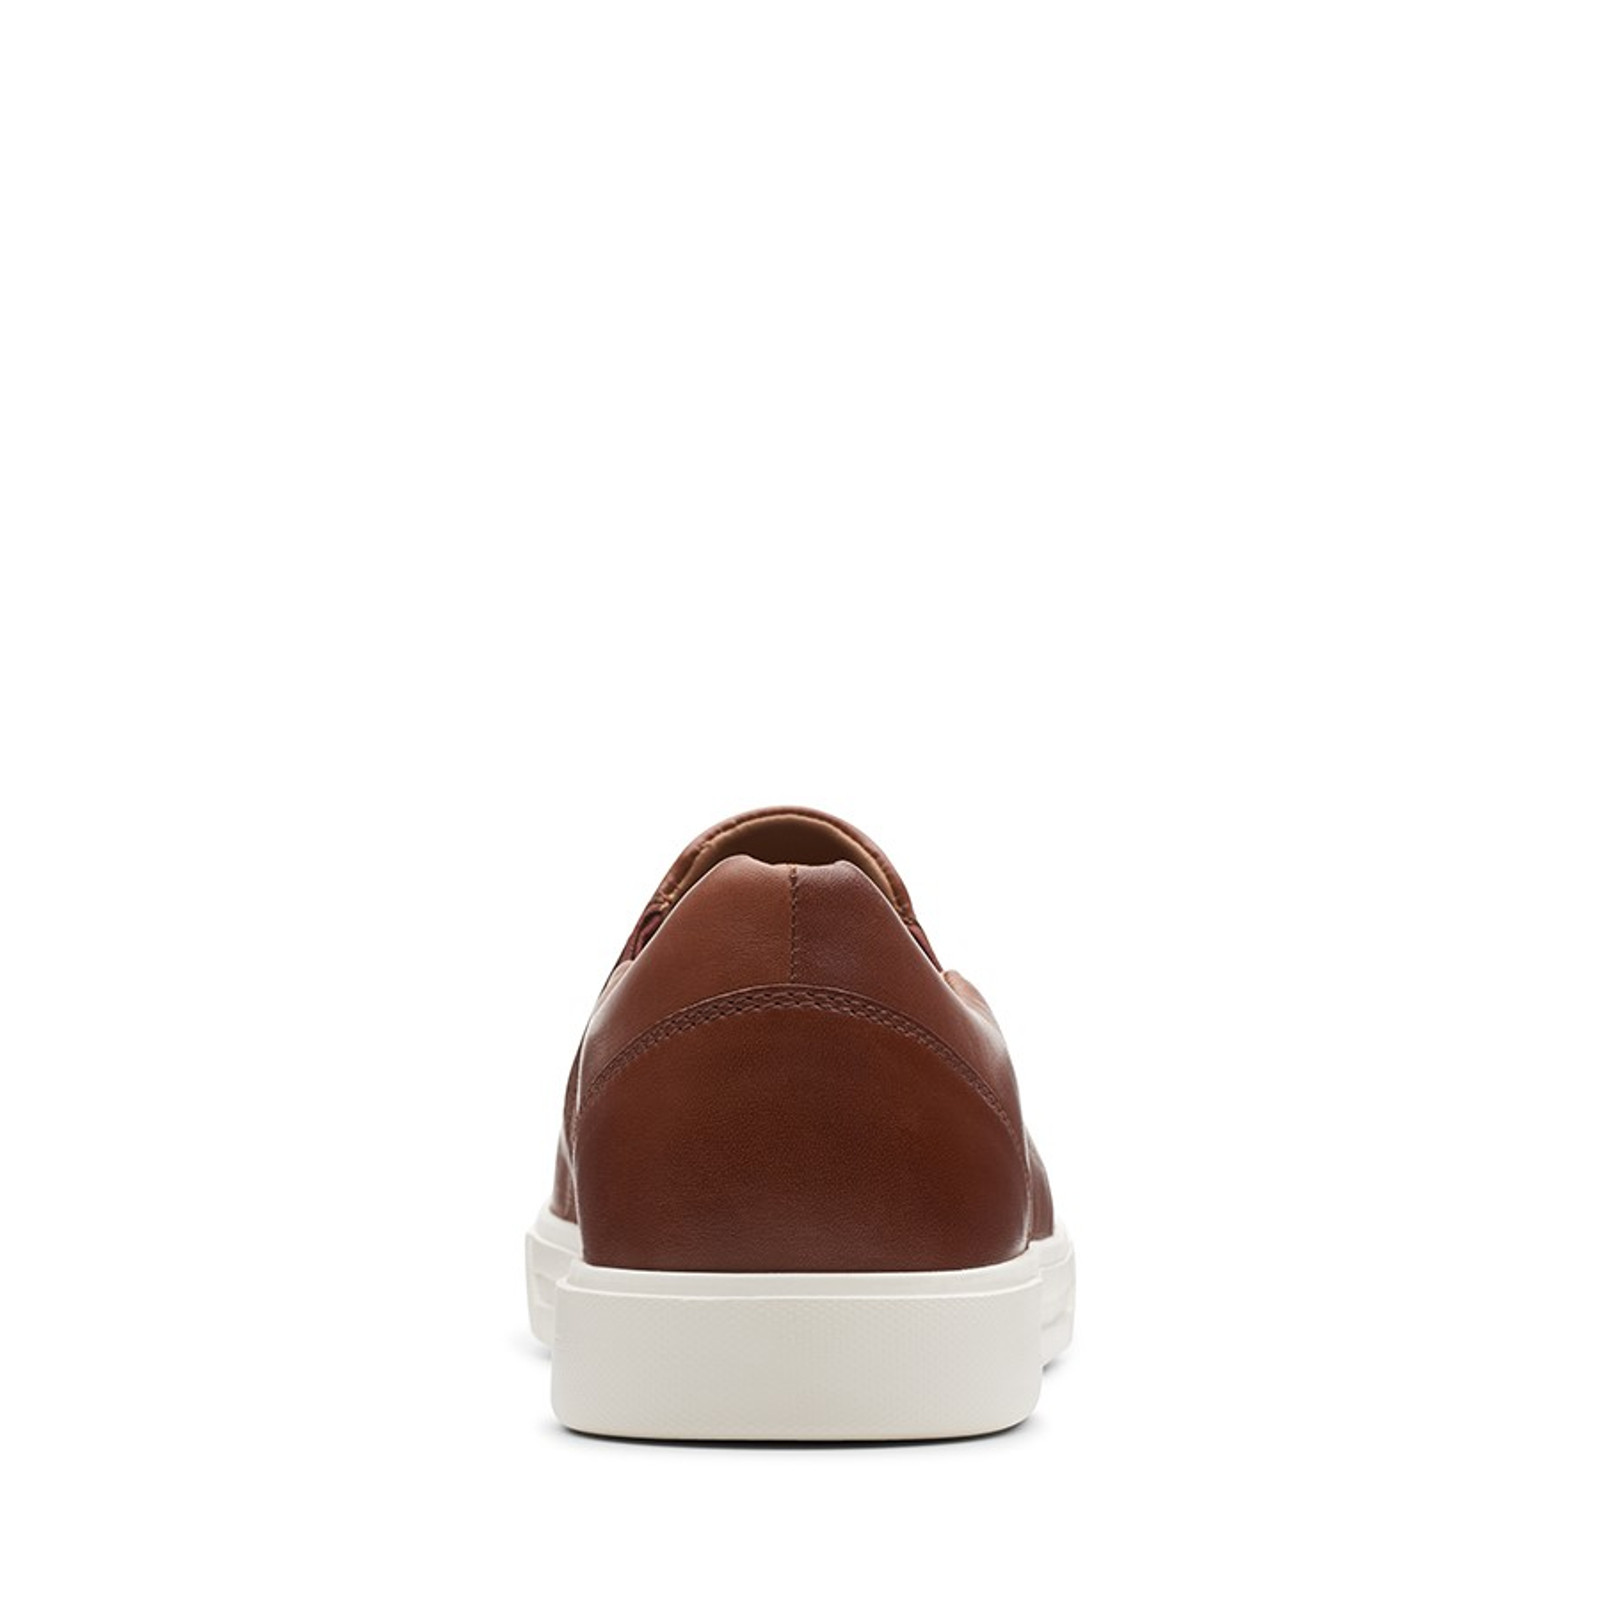 Clarks Mens UN COSTA STEP British Tan Leather